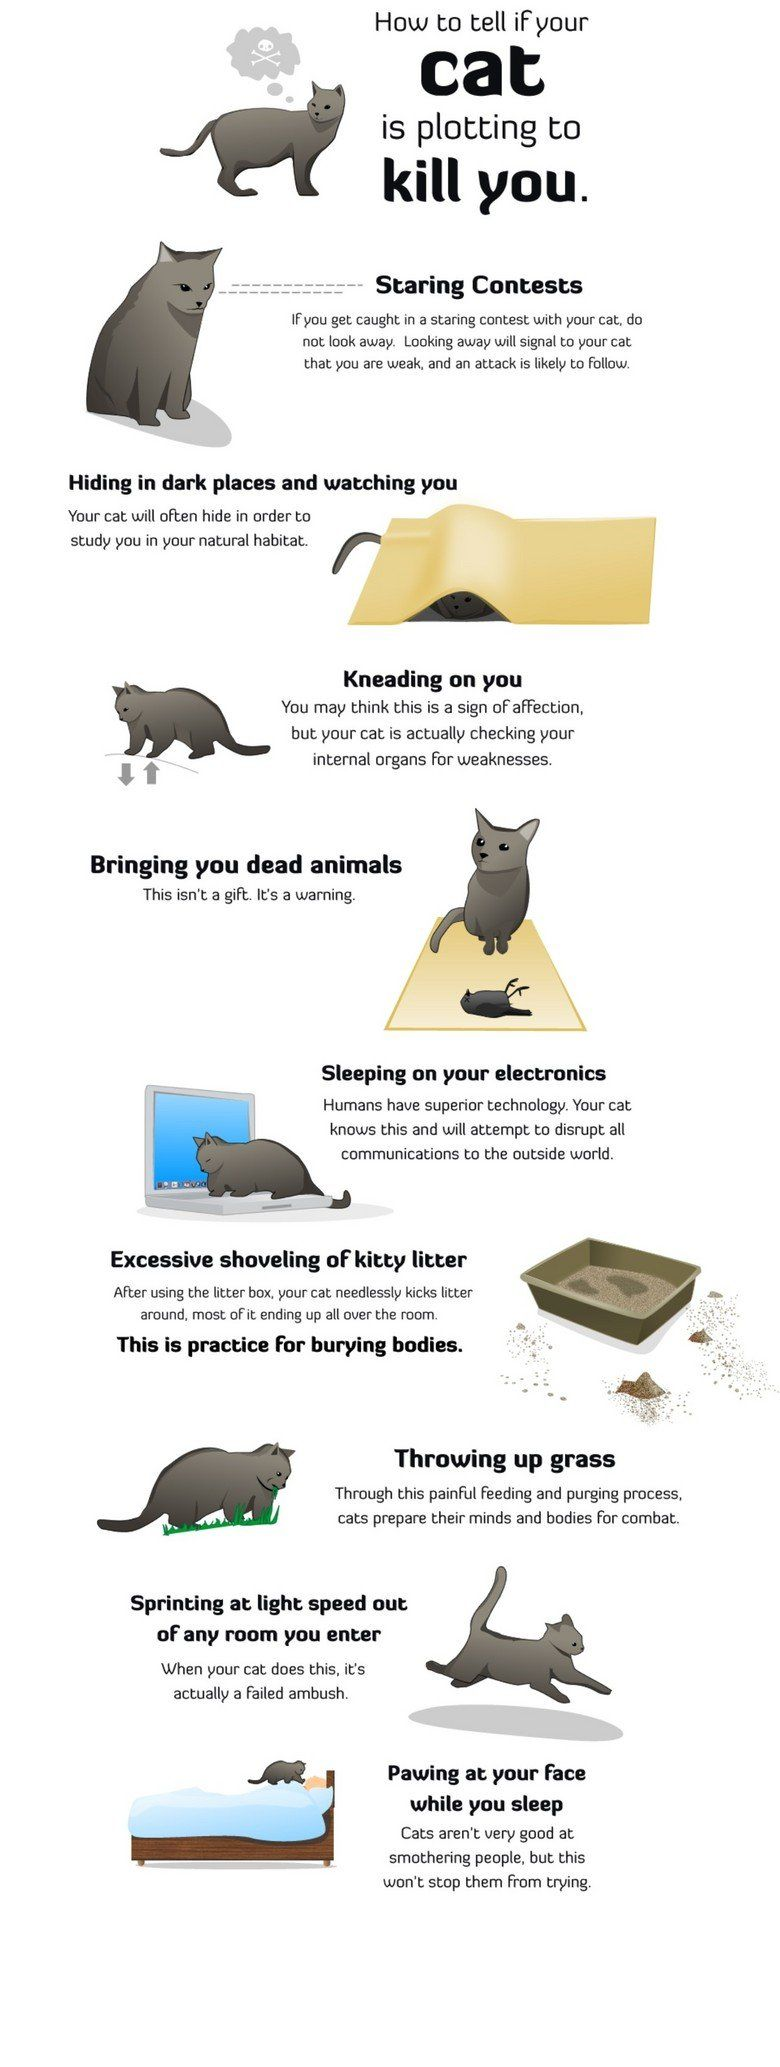 How to tell if your cat is plotting to kill you... haha